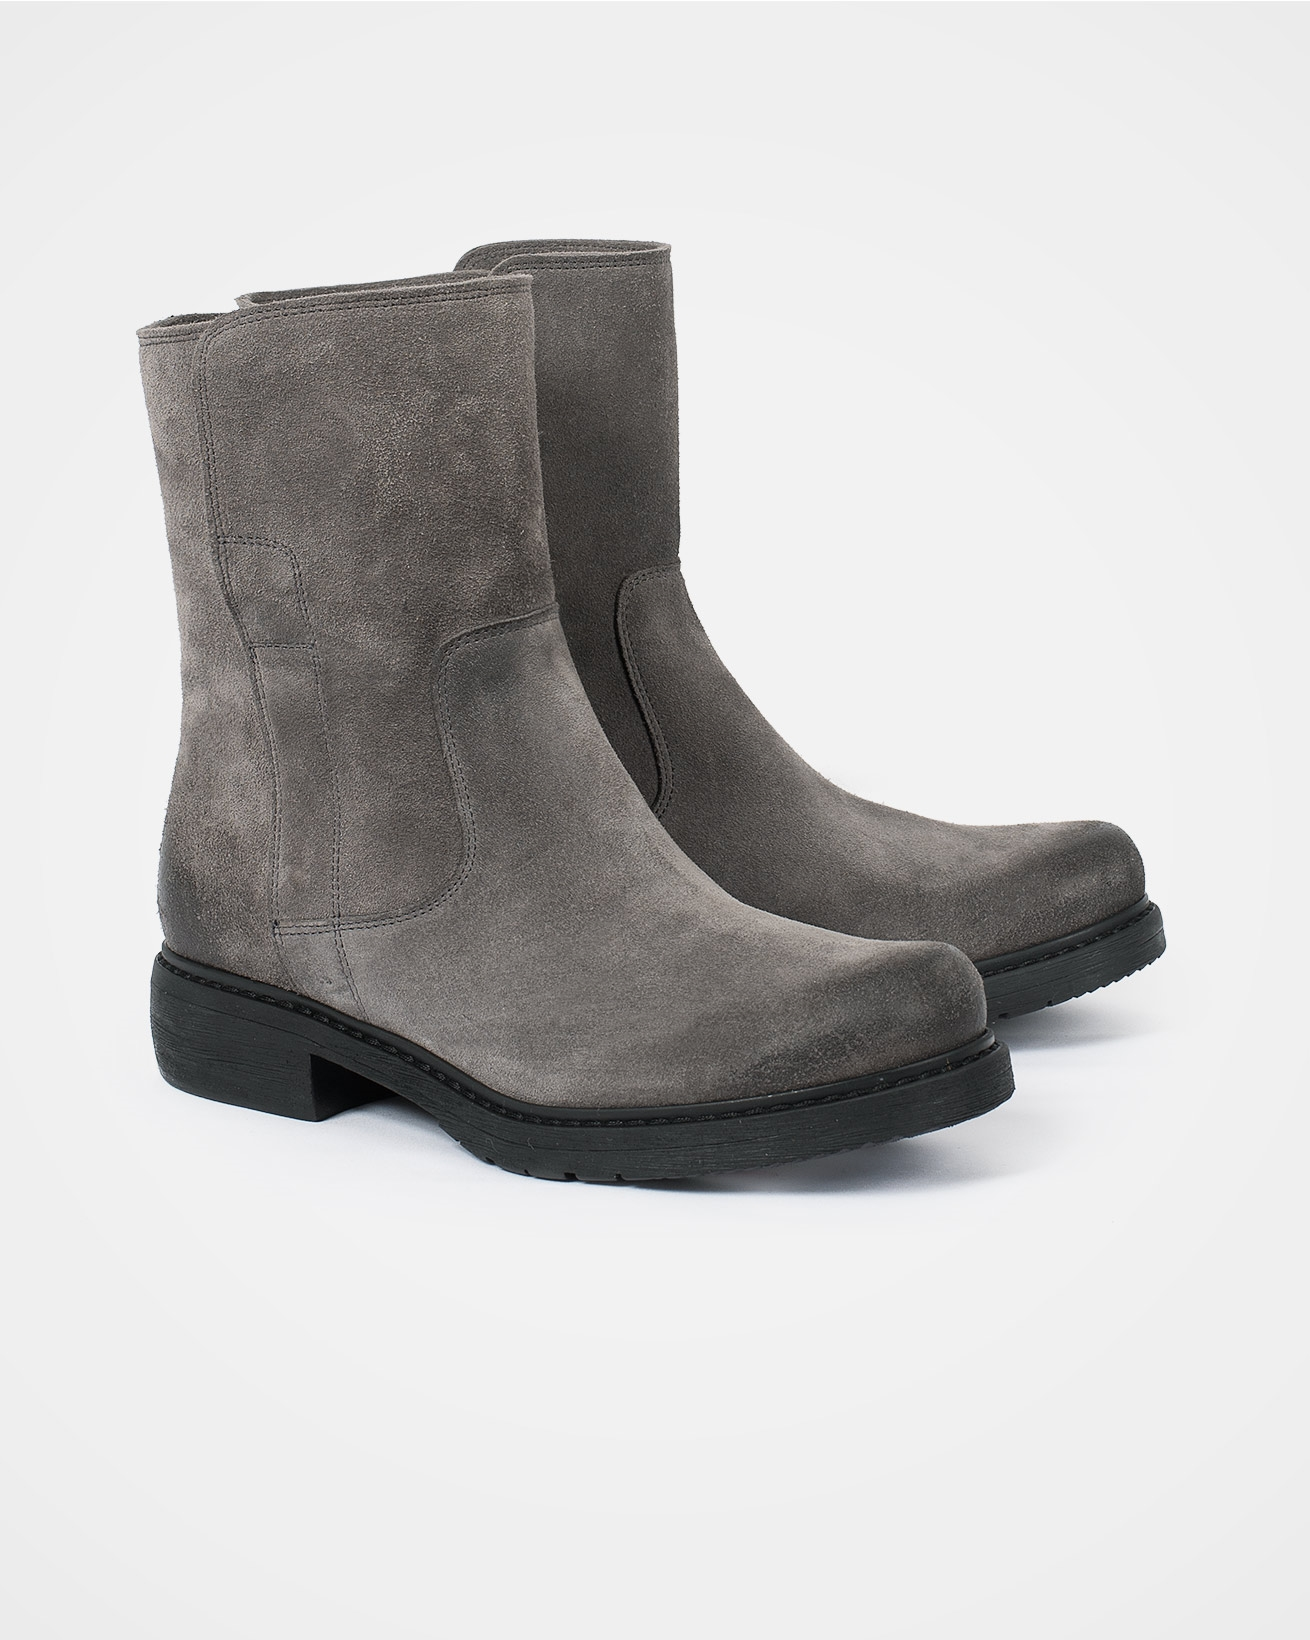 7781_essential-leather-ankle-boot_grey_pair.jpg